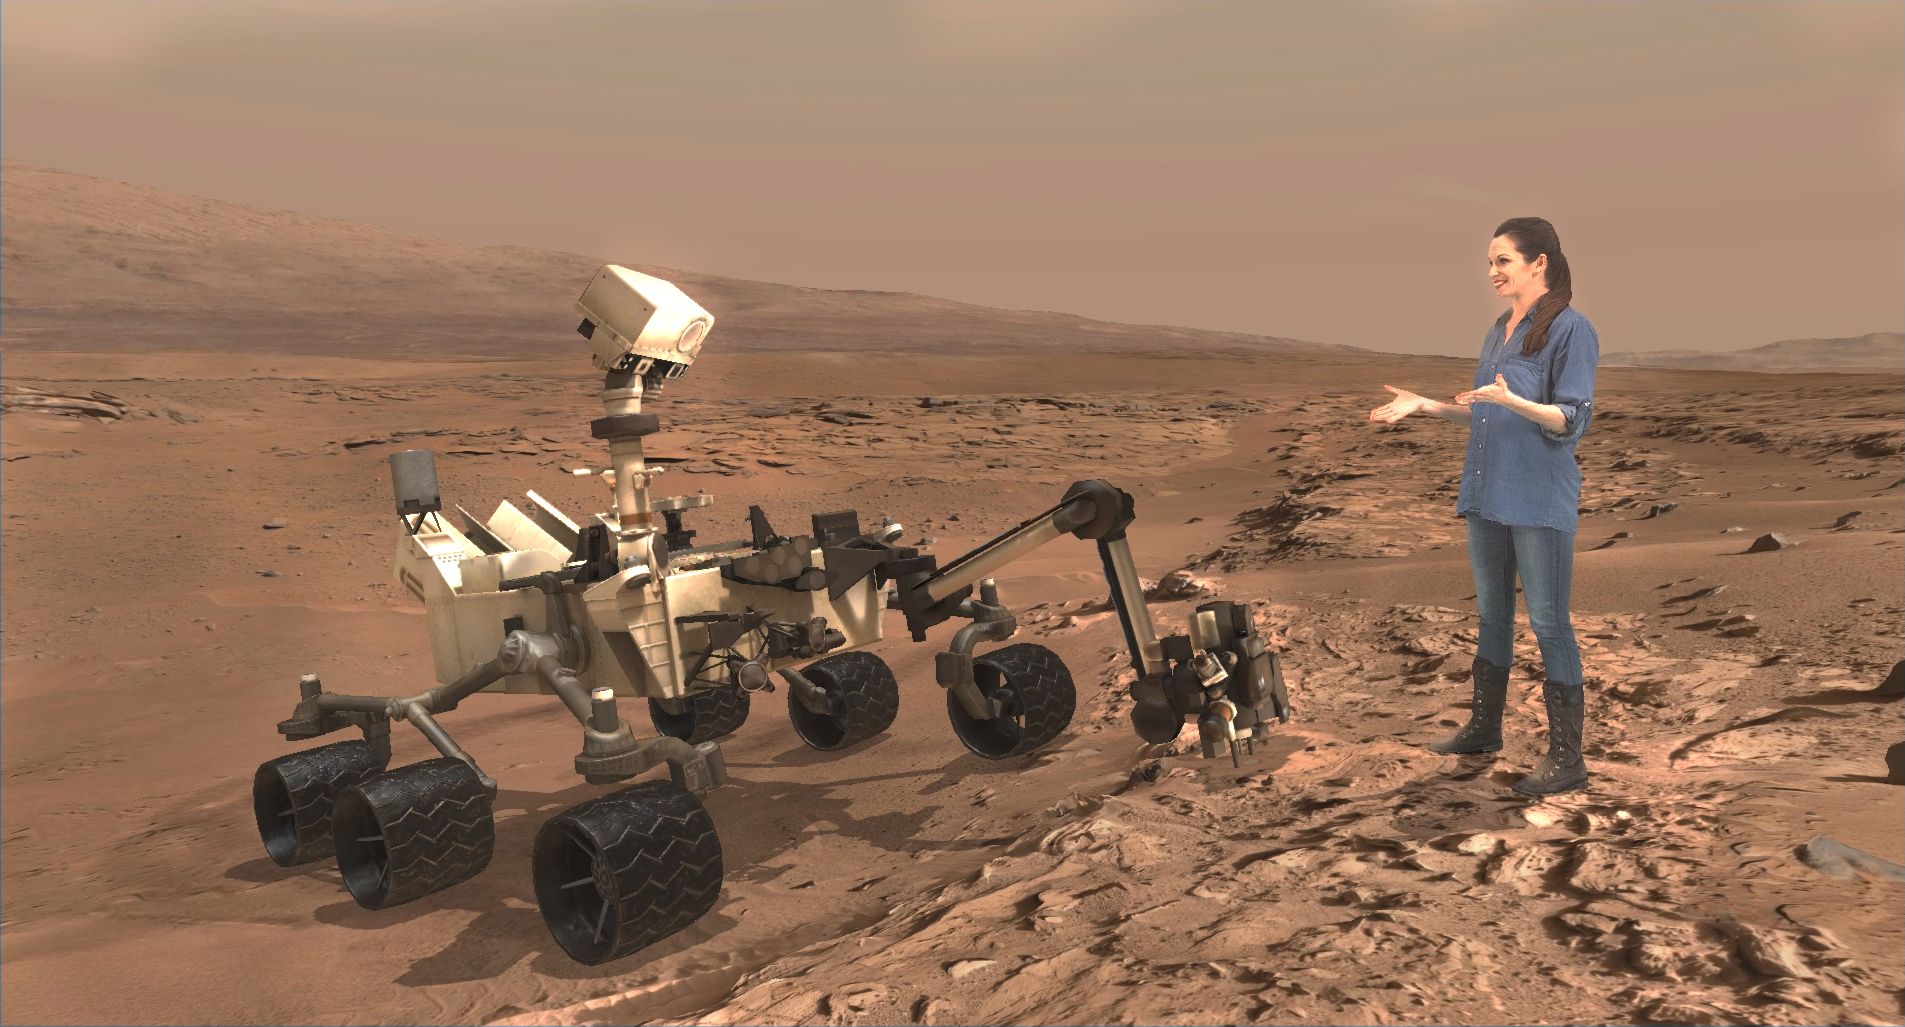 'Mixed Reality' Technology Brings Mars to Earth | Mars News